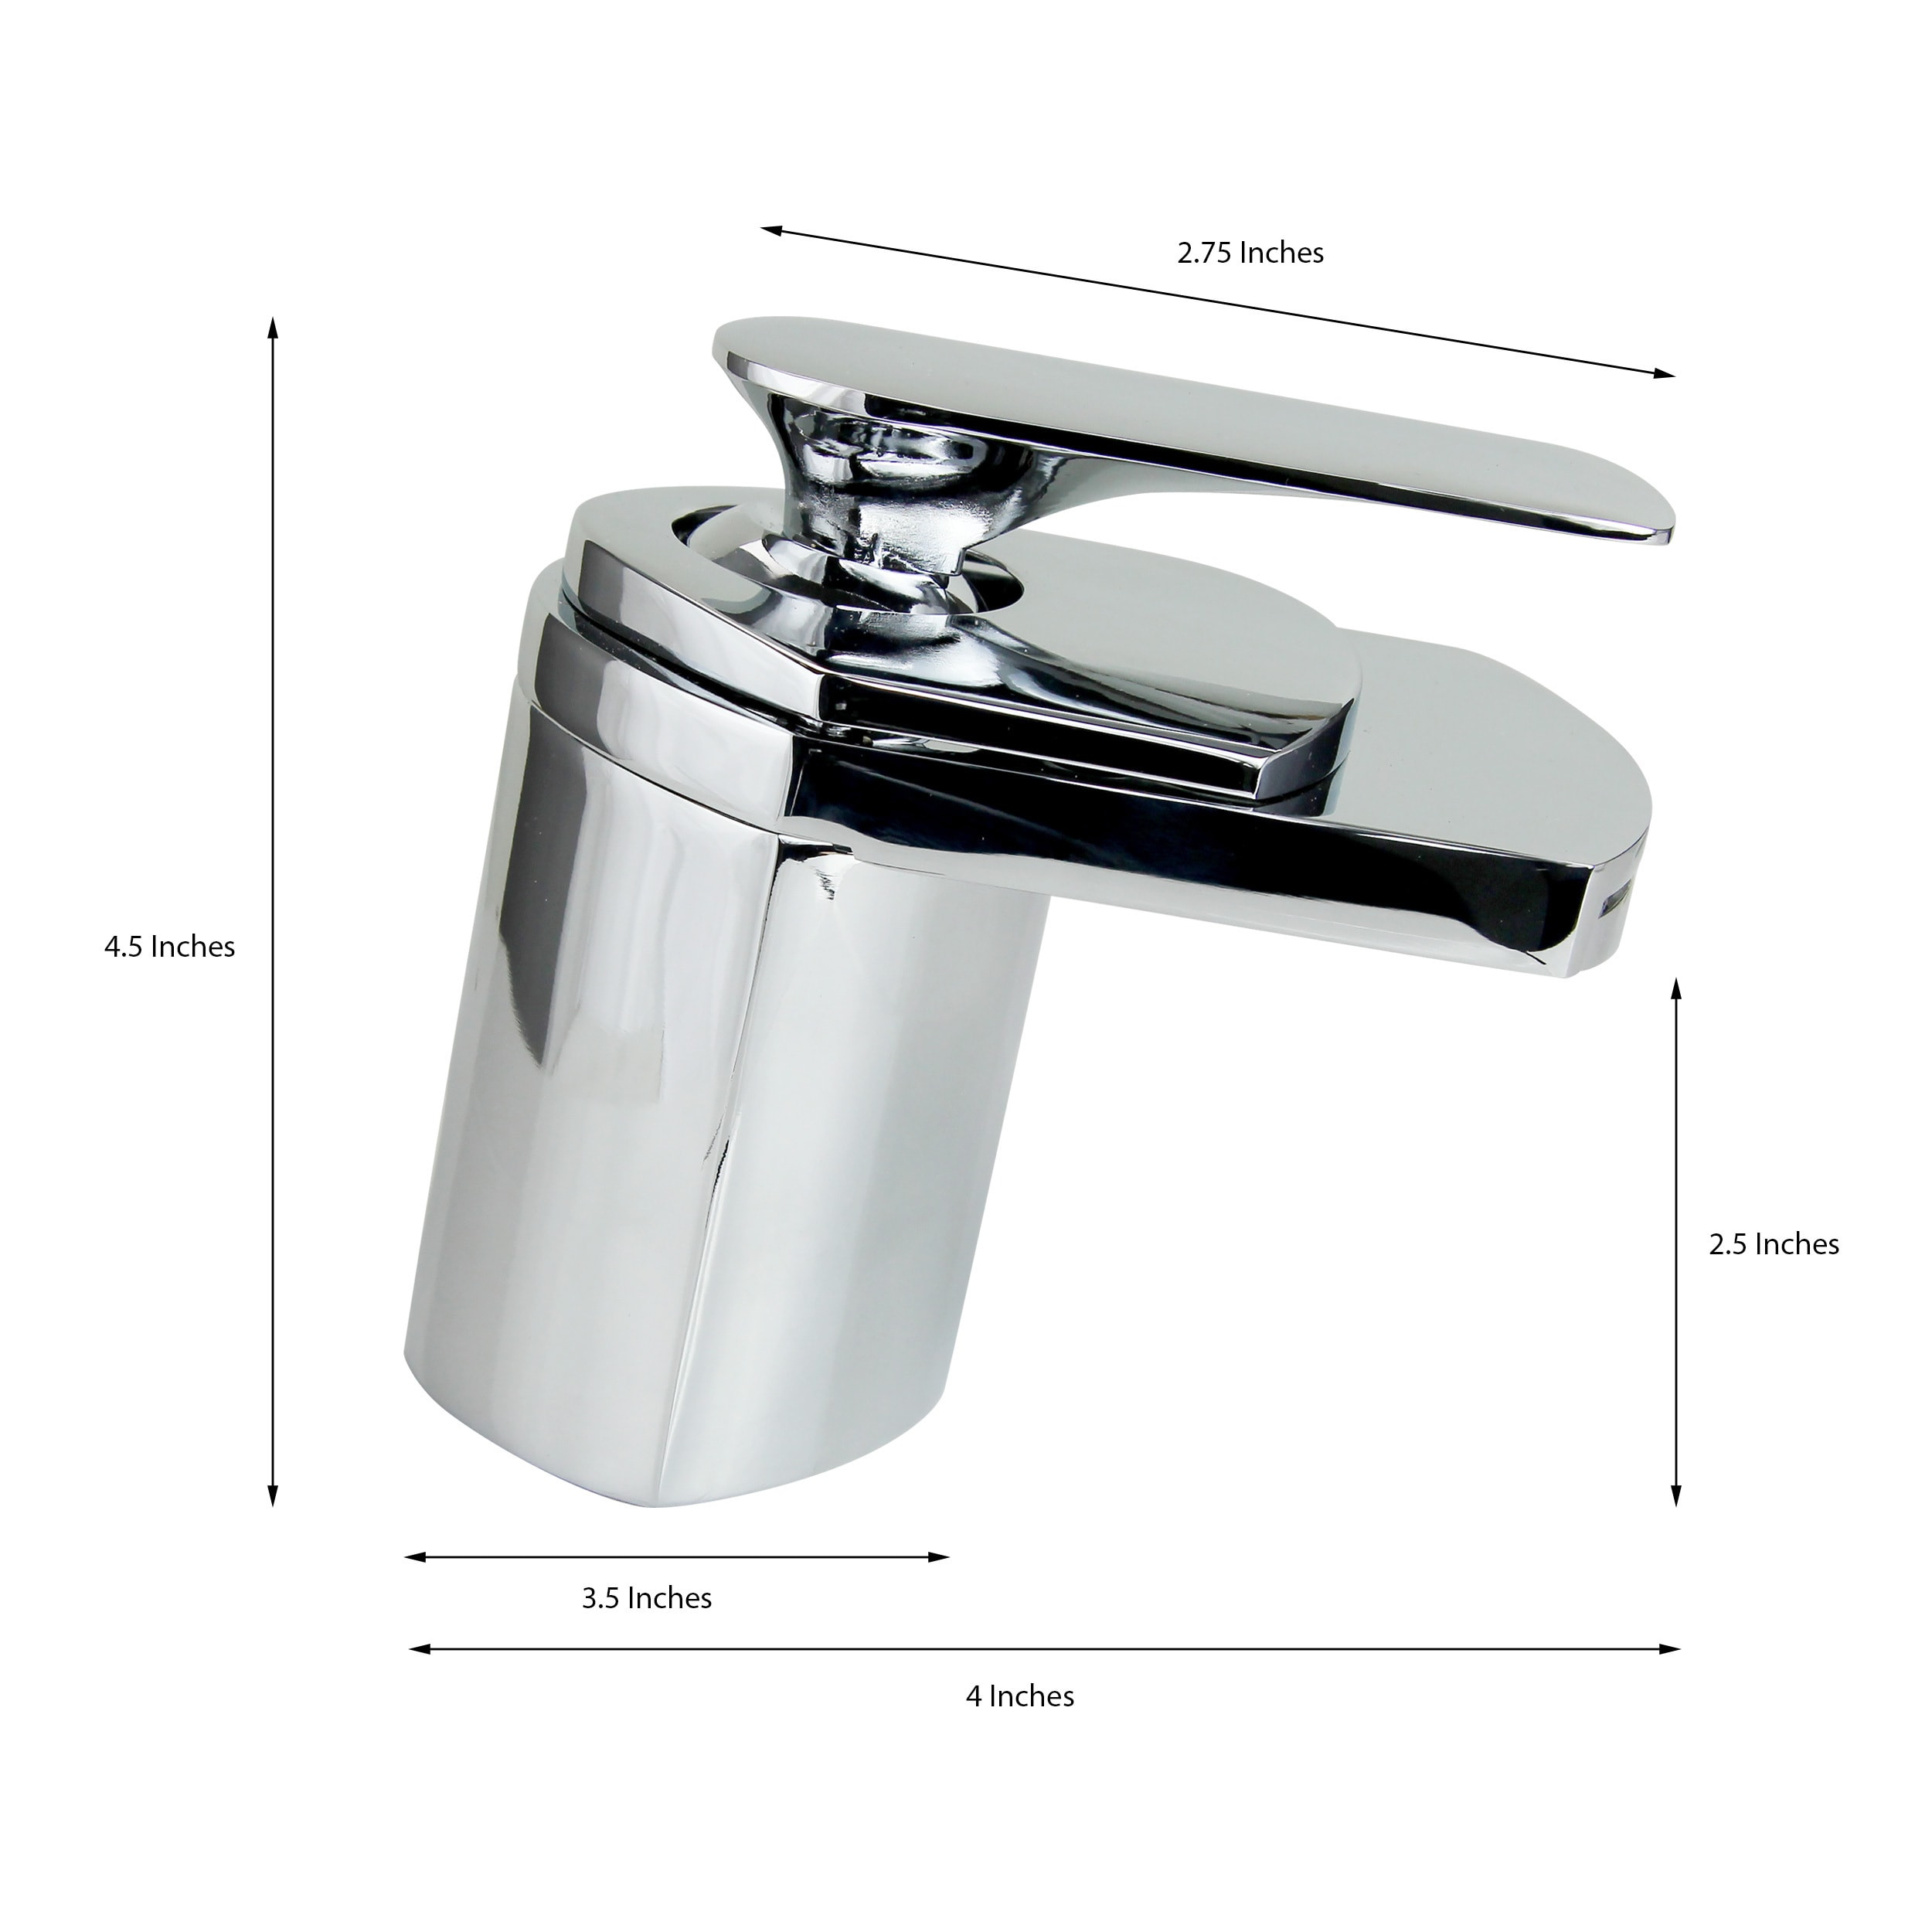 moen kohler shower roman fountain faucets parts faucet bathroom tub bathtub the for waterfall